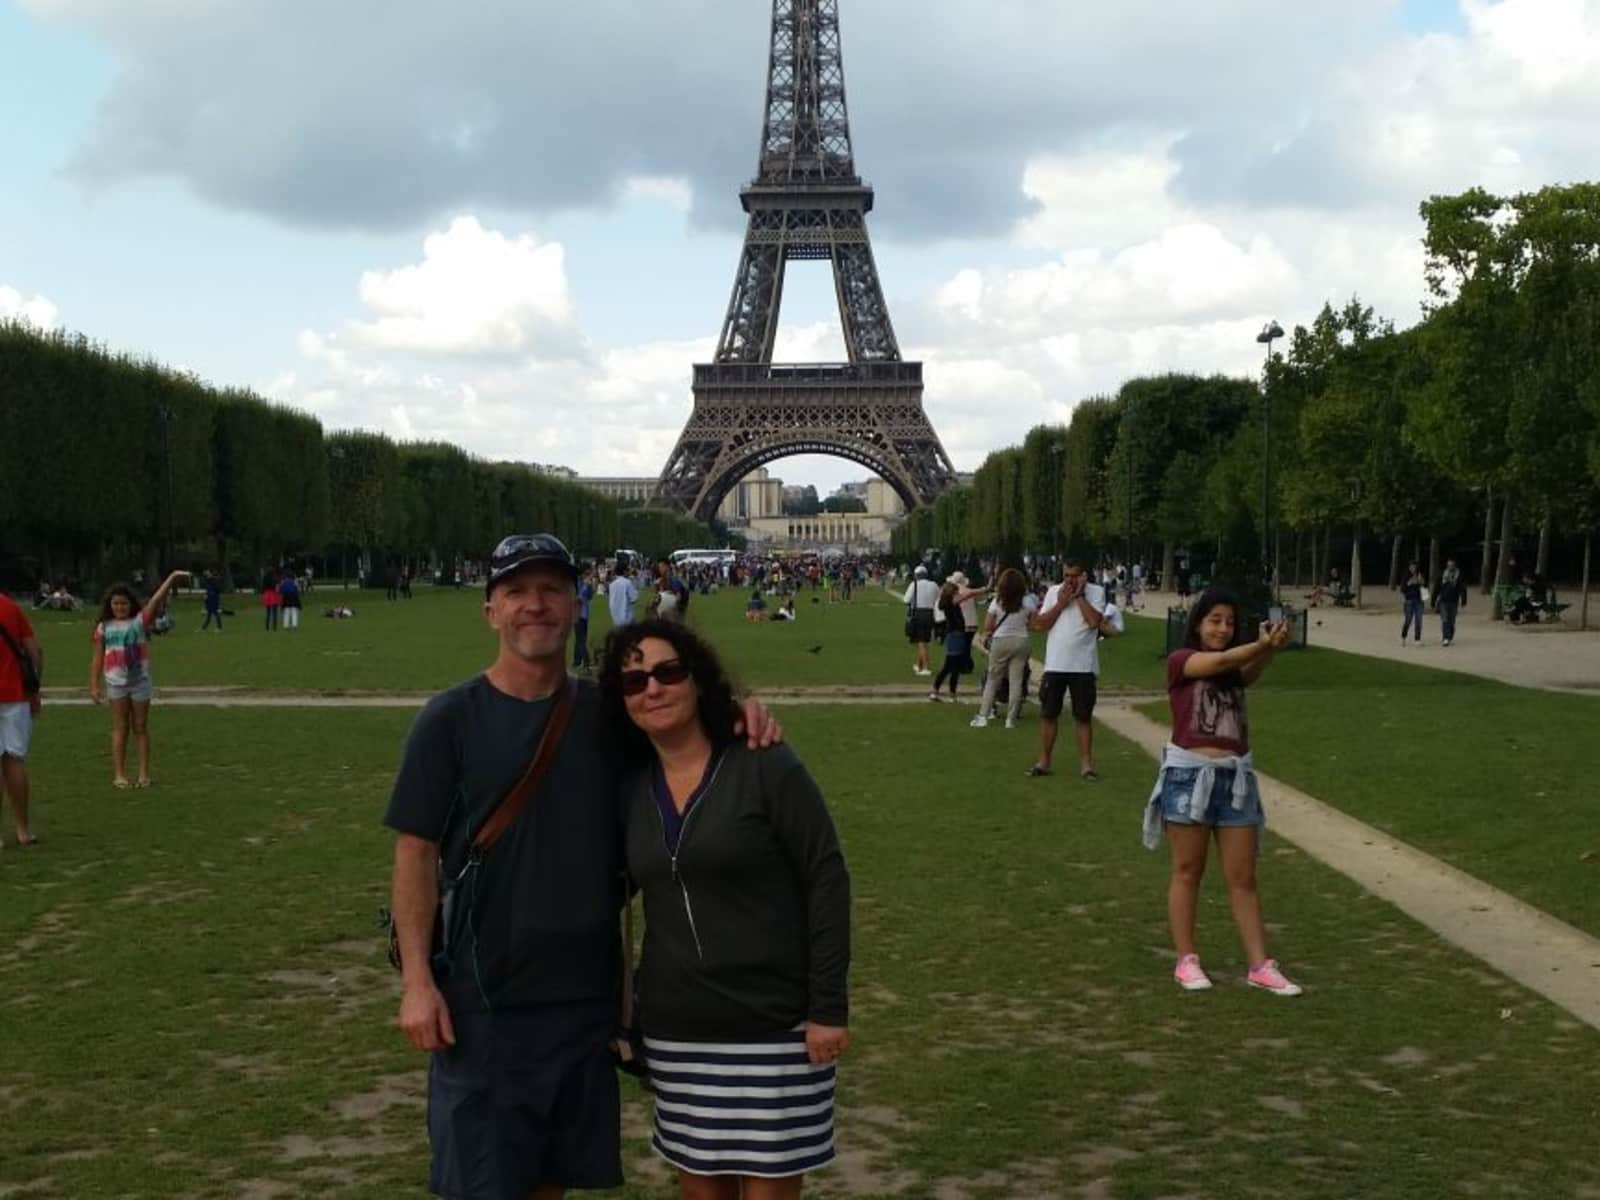 Bruce & Donna from Christchurch, New Zealand